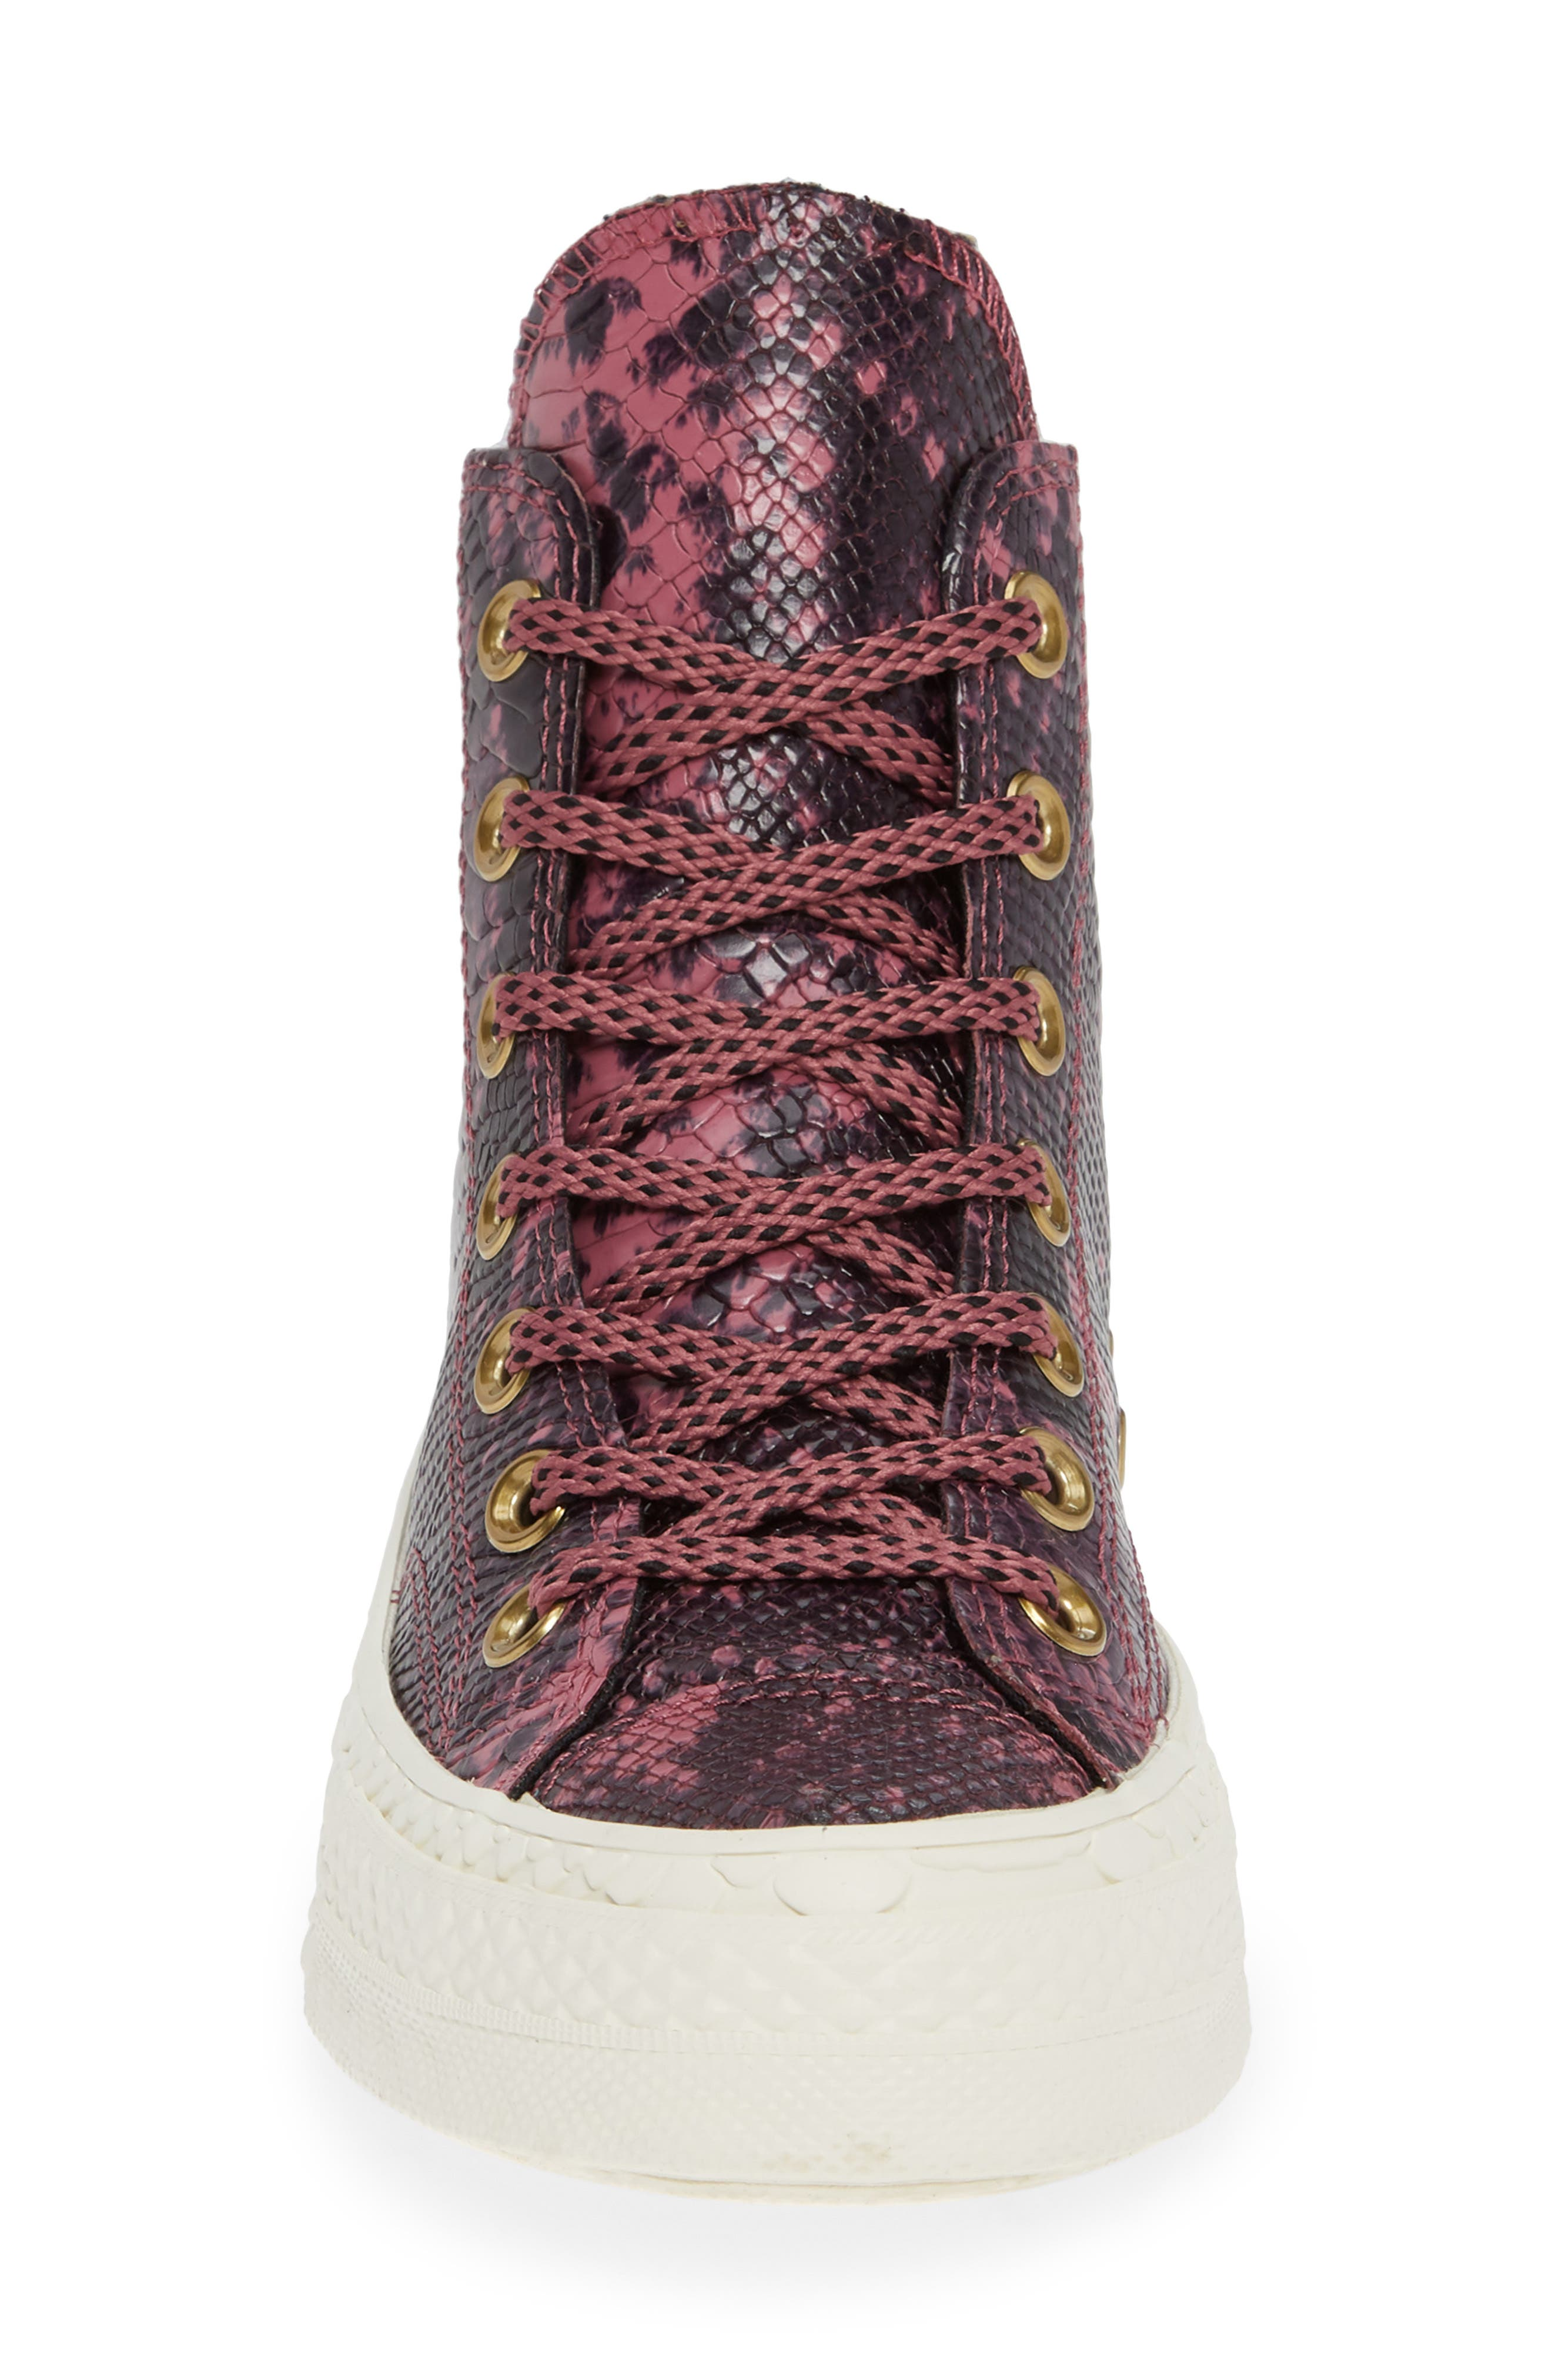 Chuck Taylor<sup>®</sup> All Star<sup>®</sup> CT 70 Reptile High Top Sneaker,                             Alternate thumbnail 4, color,                             VINTAGE WINE LEATHER